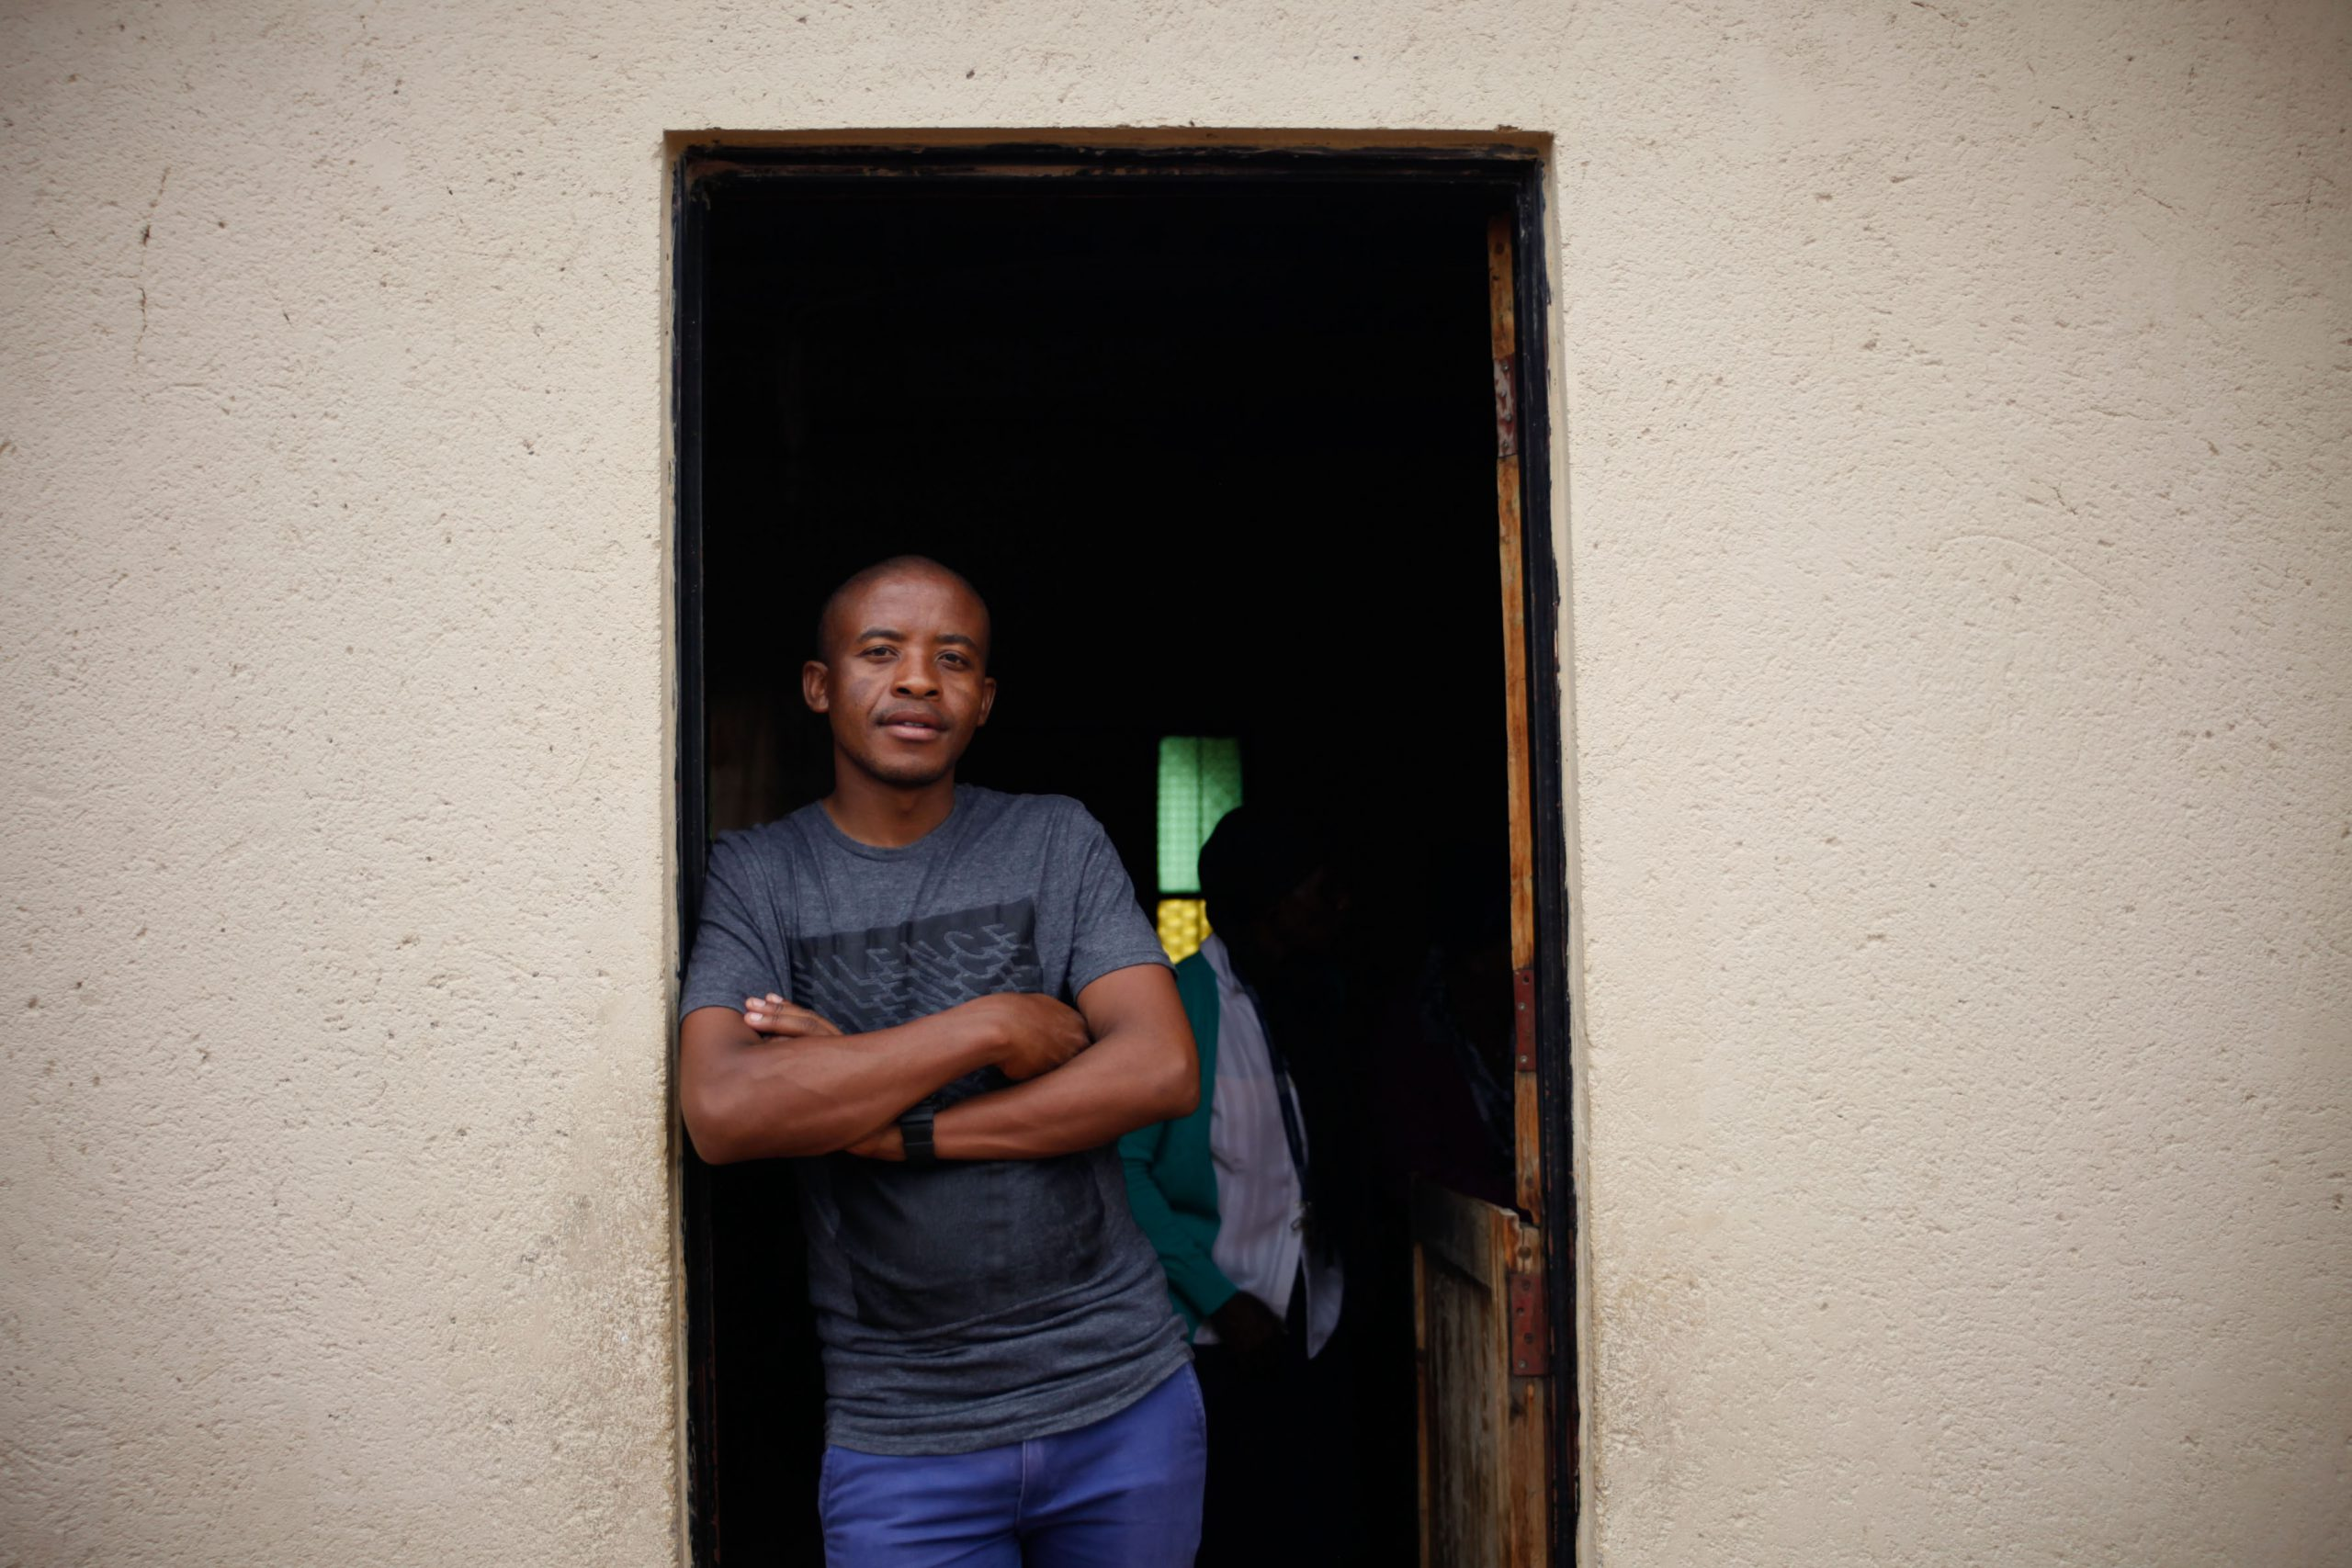 11 January 2020: Nare Mphela's nephew Phuti Mpela says the family had accepted the activist's gender identity.